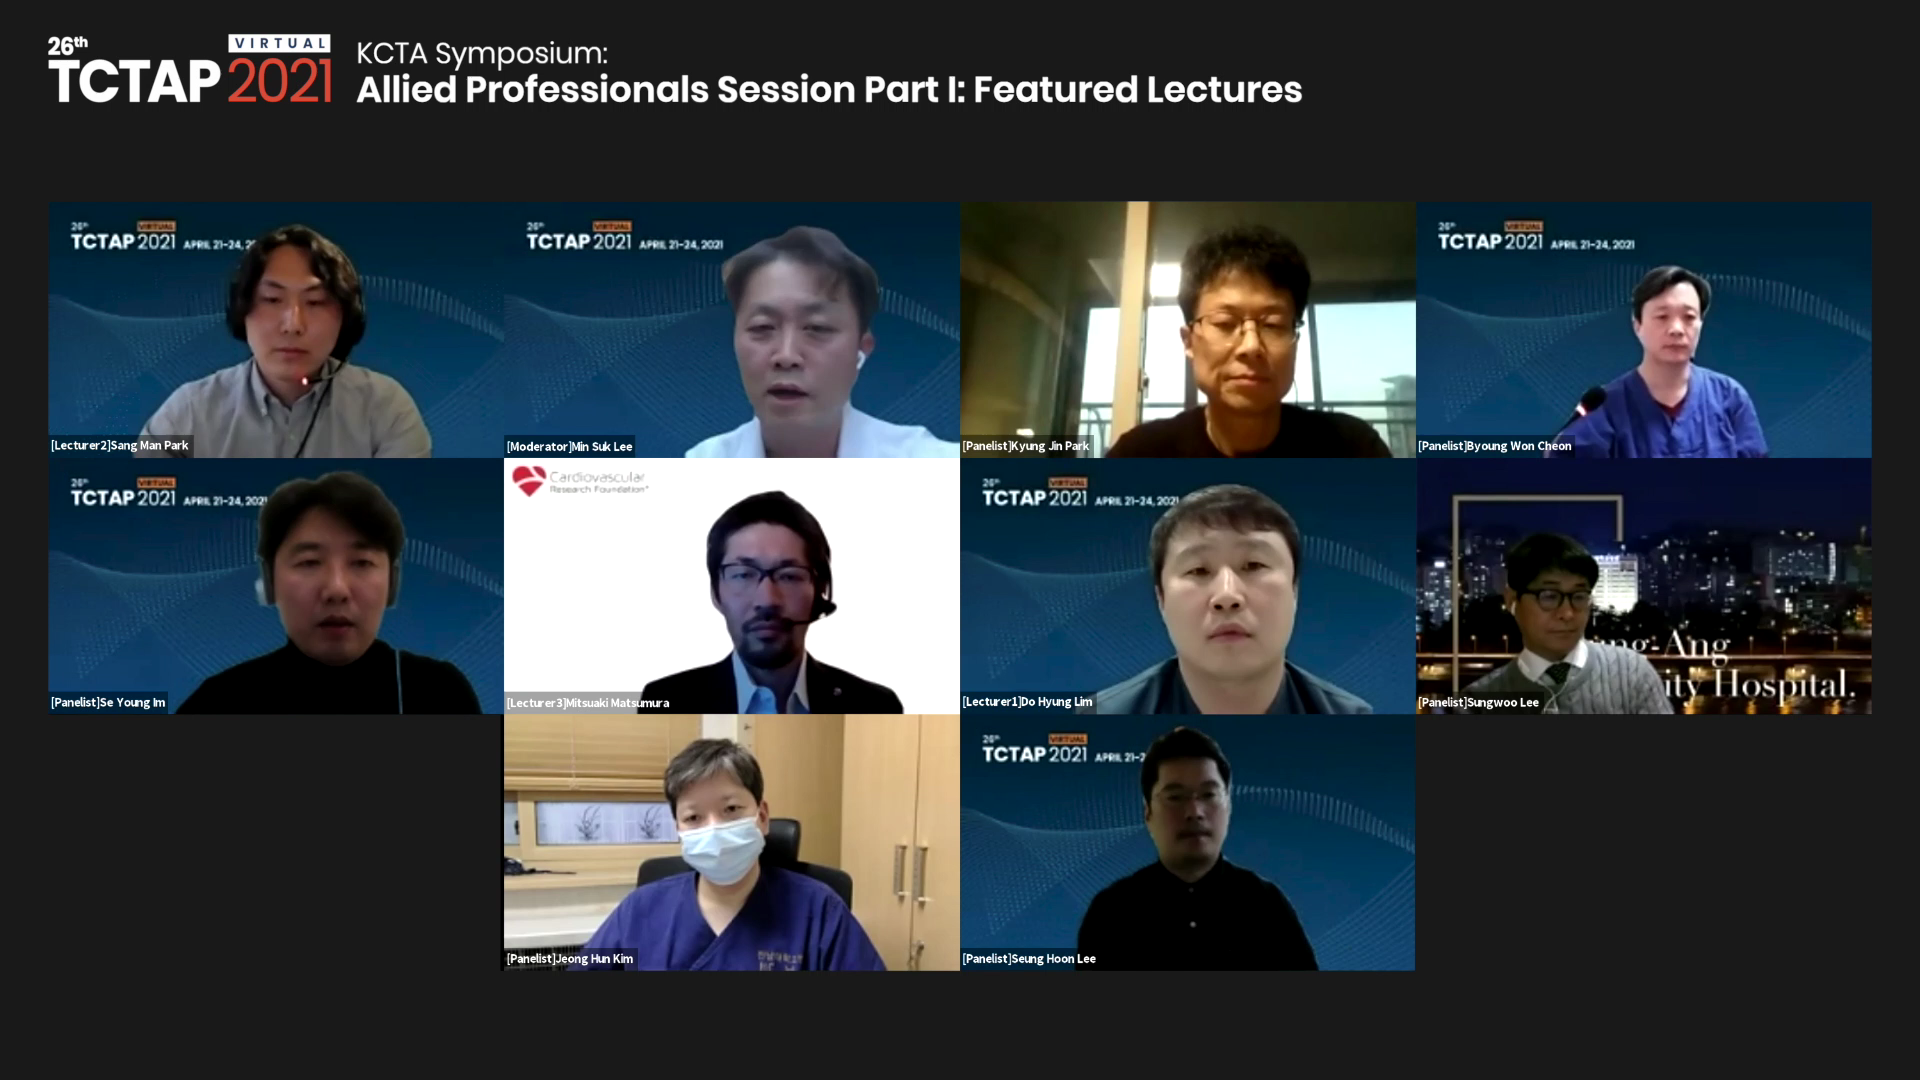 KCTA Symposium: Allied Professionals Session - Part I: Featured Lectures